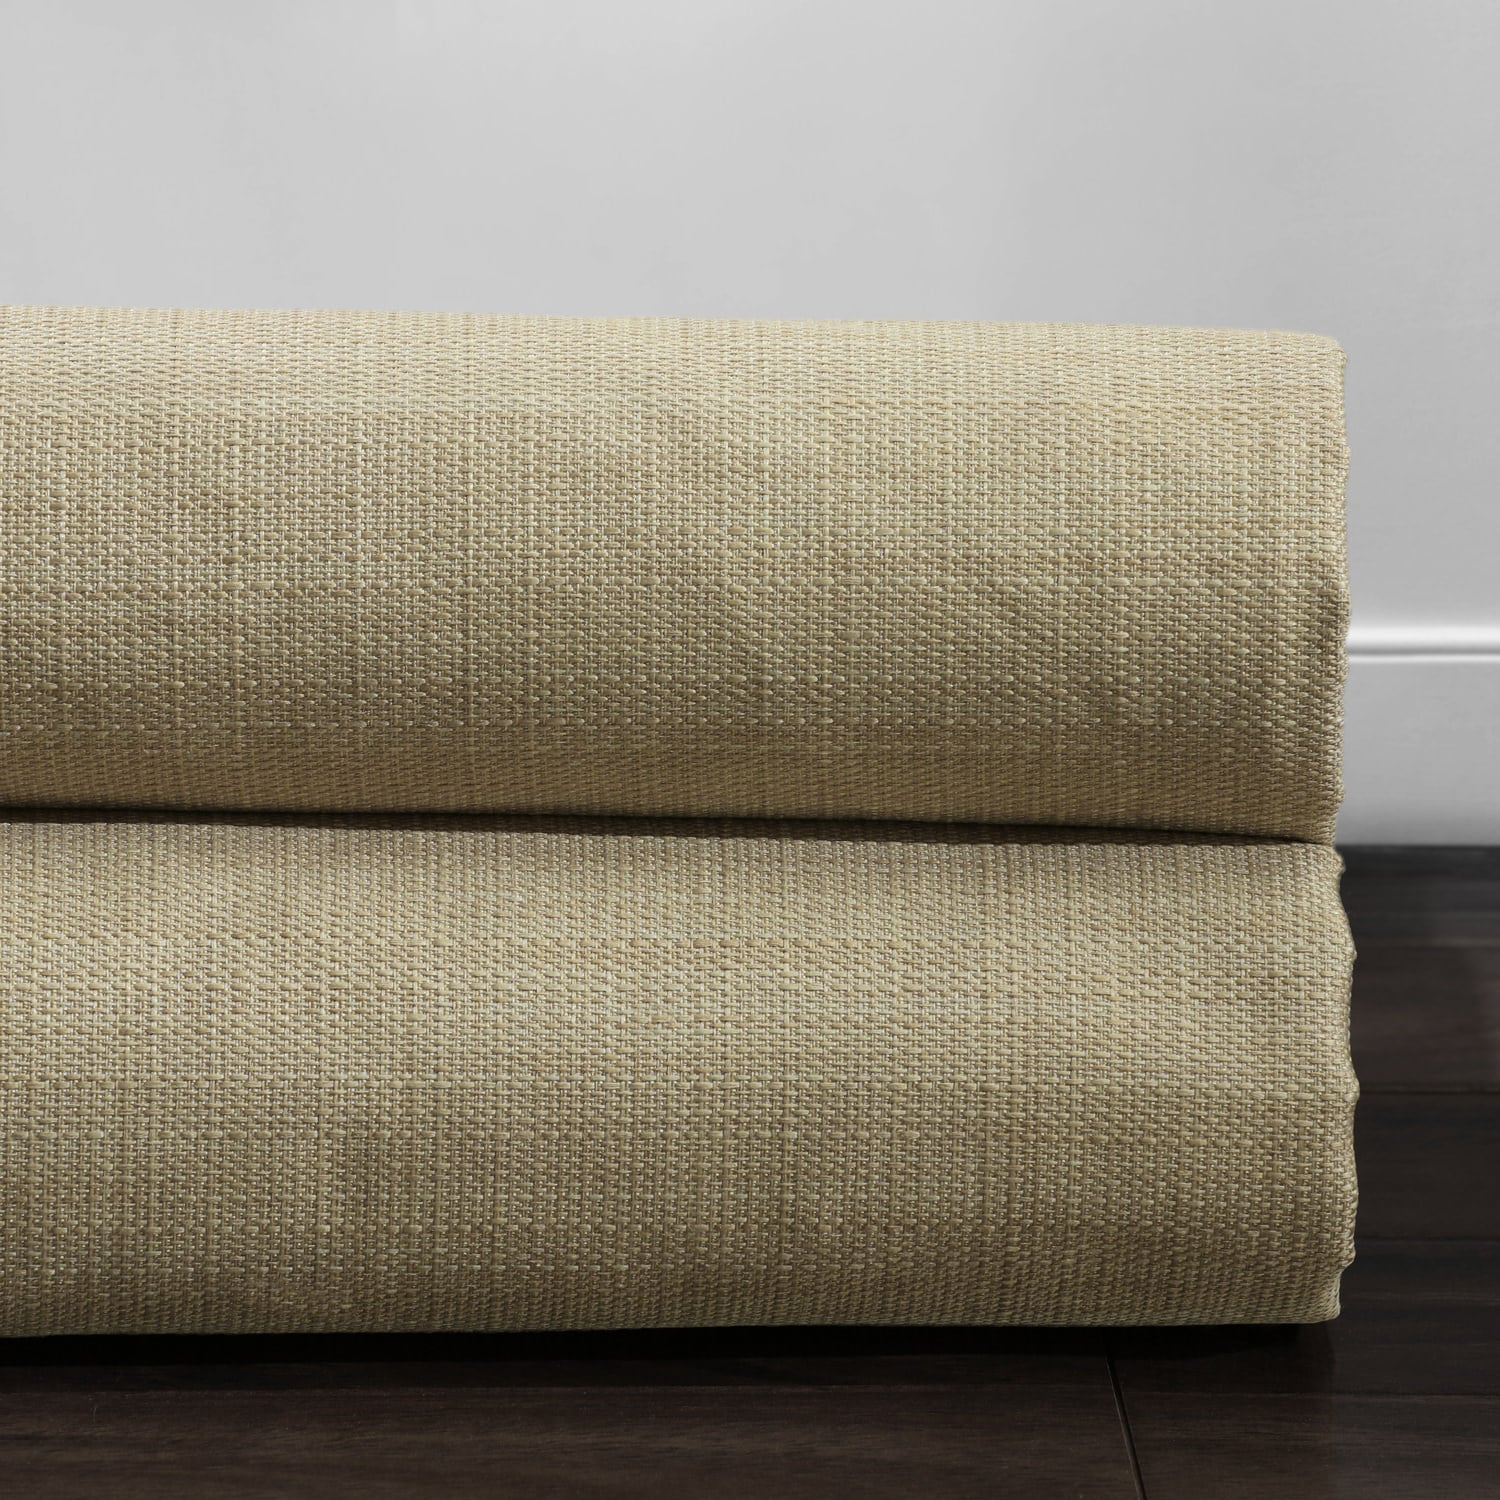 Classic Tan Italian Textured Faux Linen Hotel Blackout Swatch